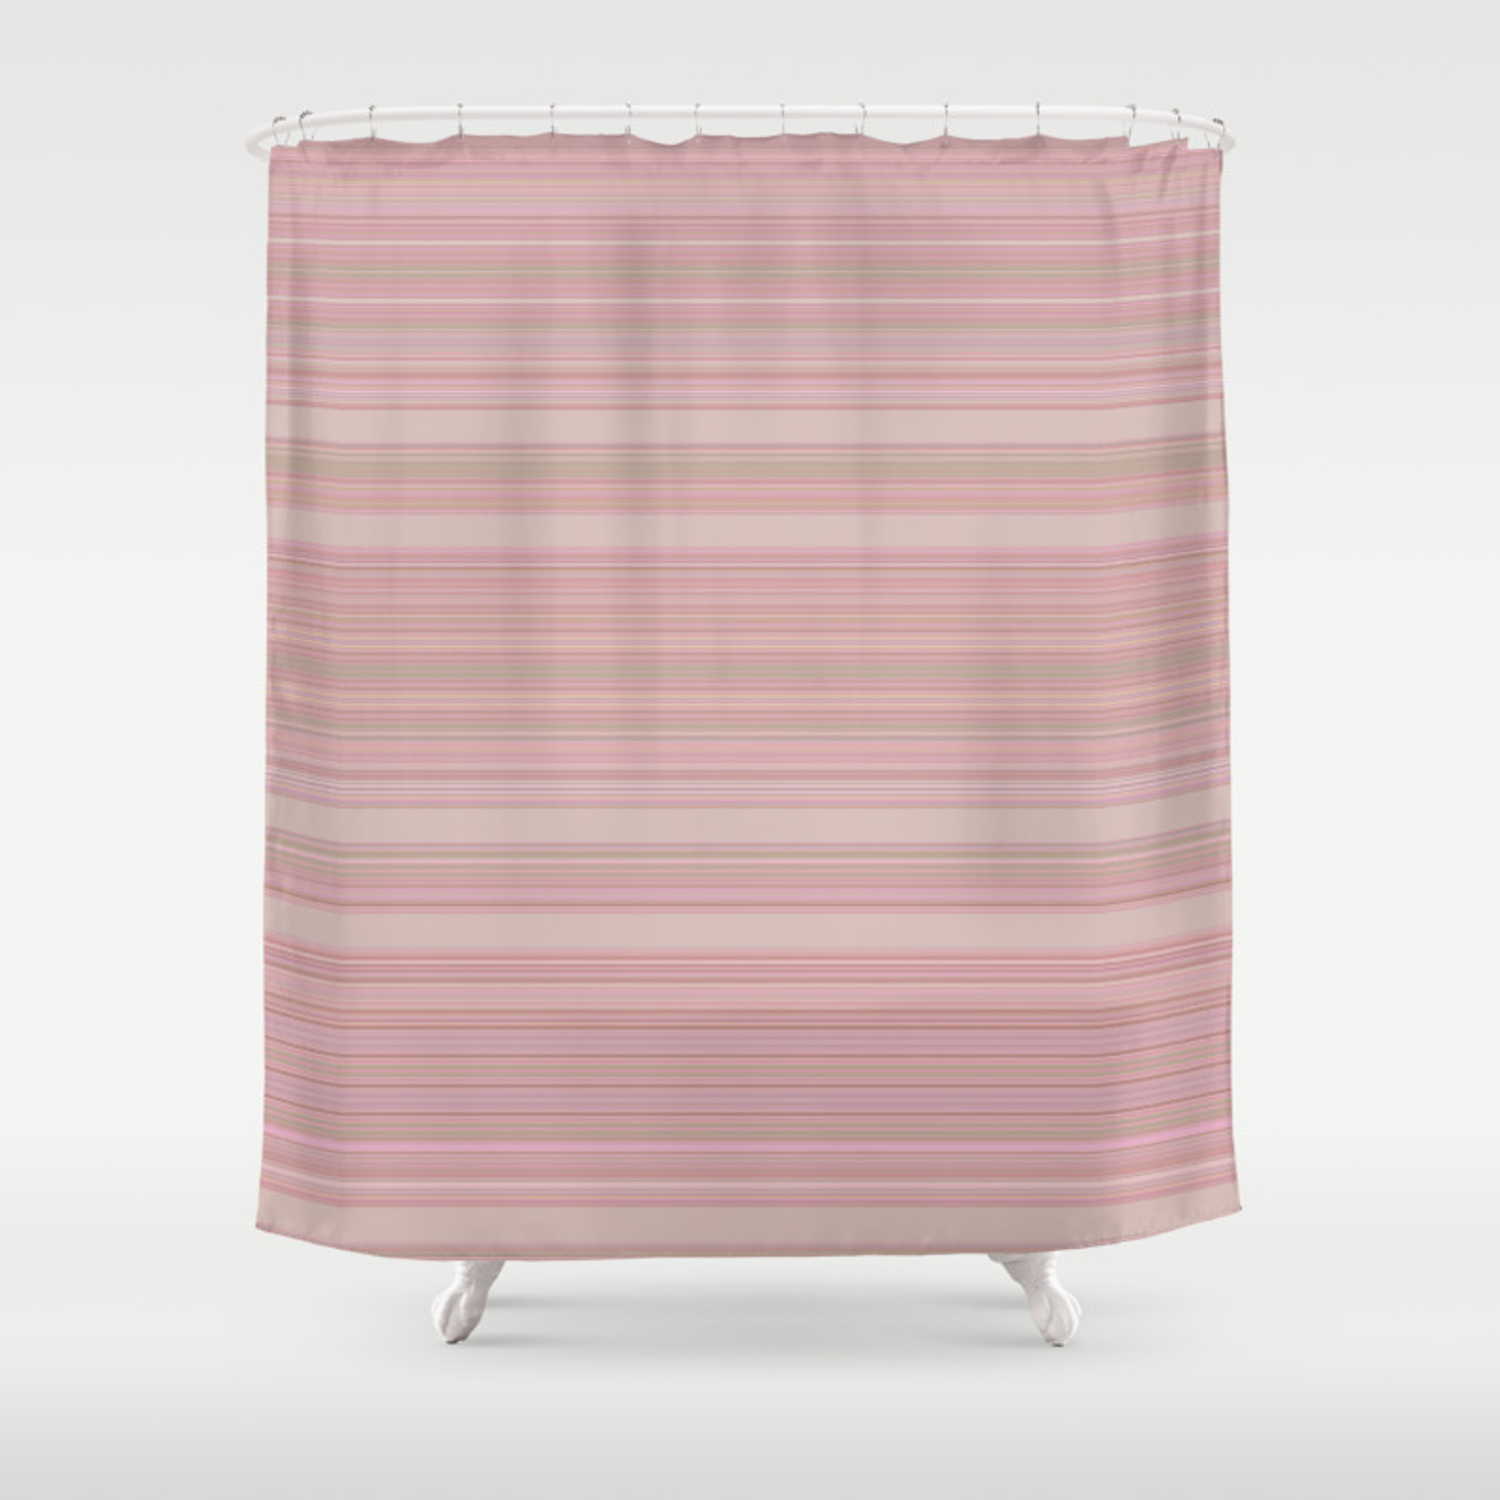 Dusk Heavenly Pink Stripes Shower Curtain